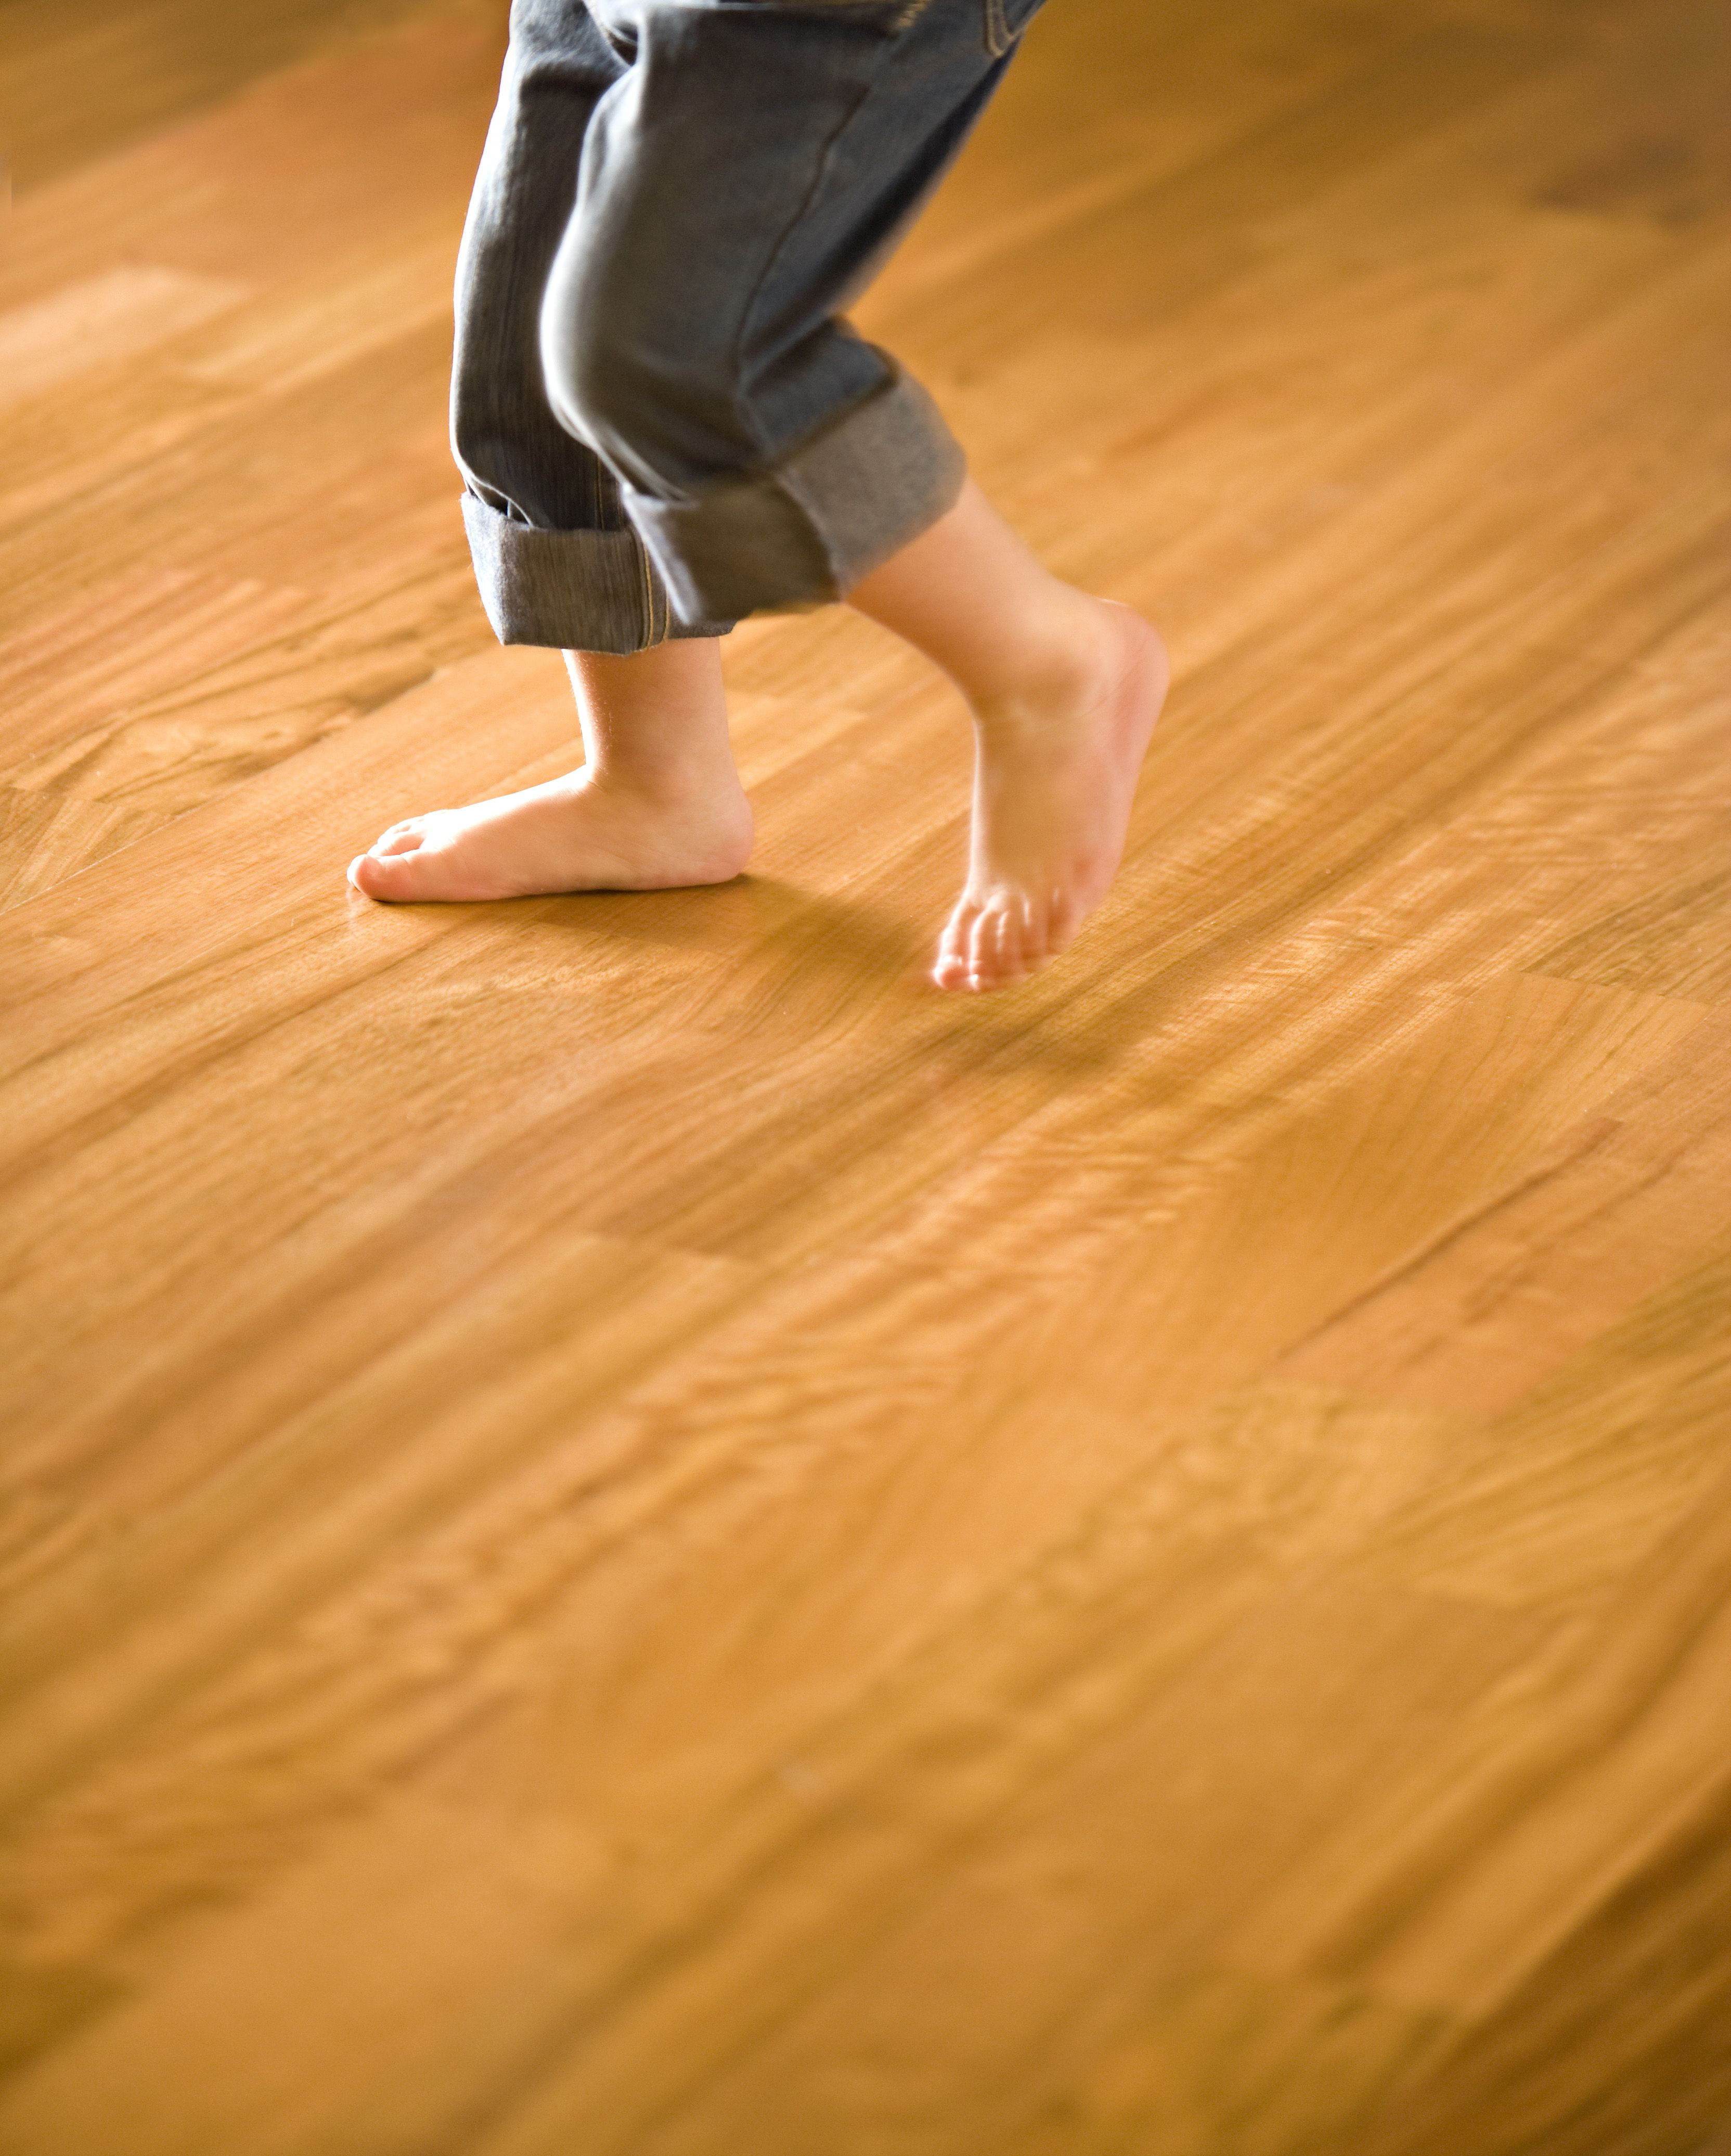 hardwood floor care of make sure your hardwood floors are clean for the tiny bare feet in pertaining to make sure your hardwood floors are clean for the tiny bare feet in your home